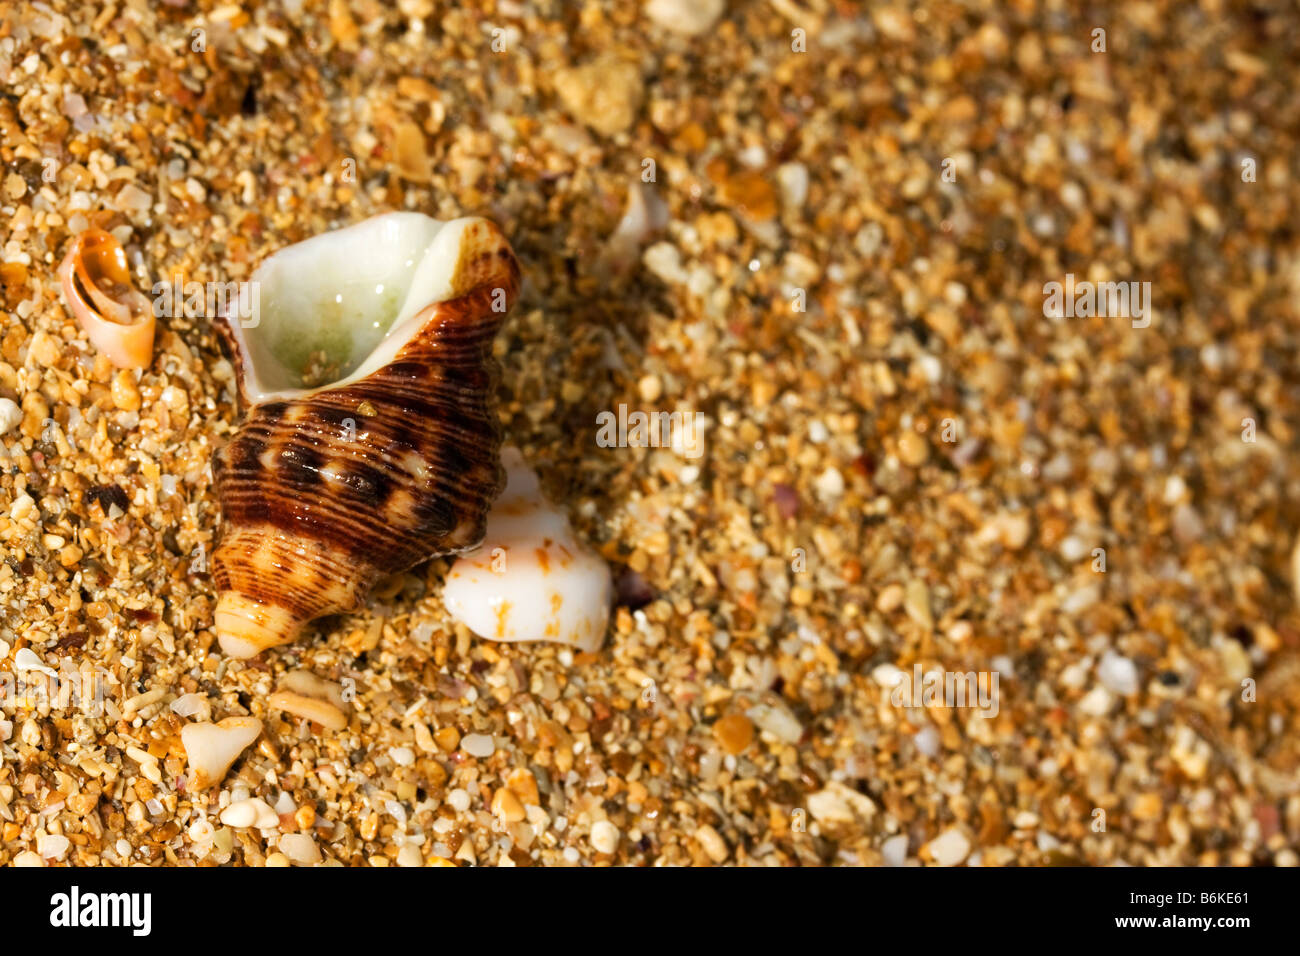 elaborate exoskeleton shell on fragments of shells on the shore - Stock Image